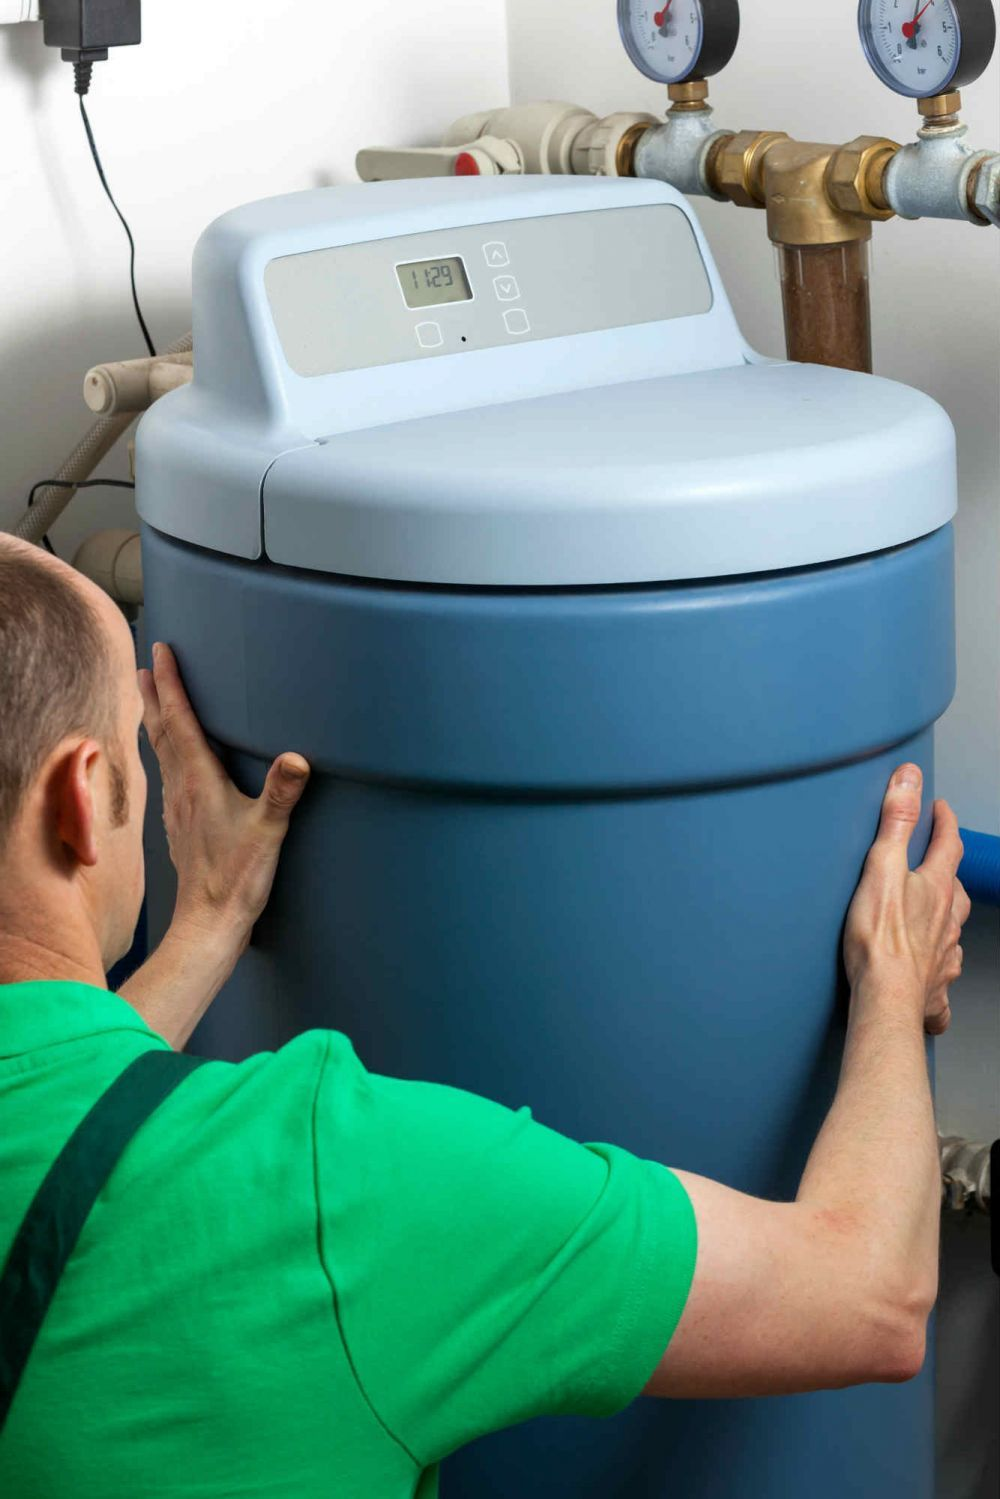 My best friend wants to add a water softener to her home